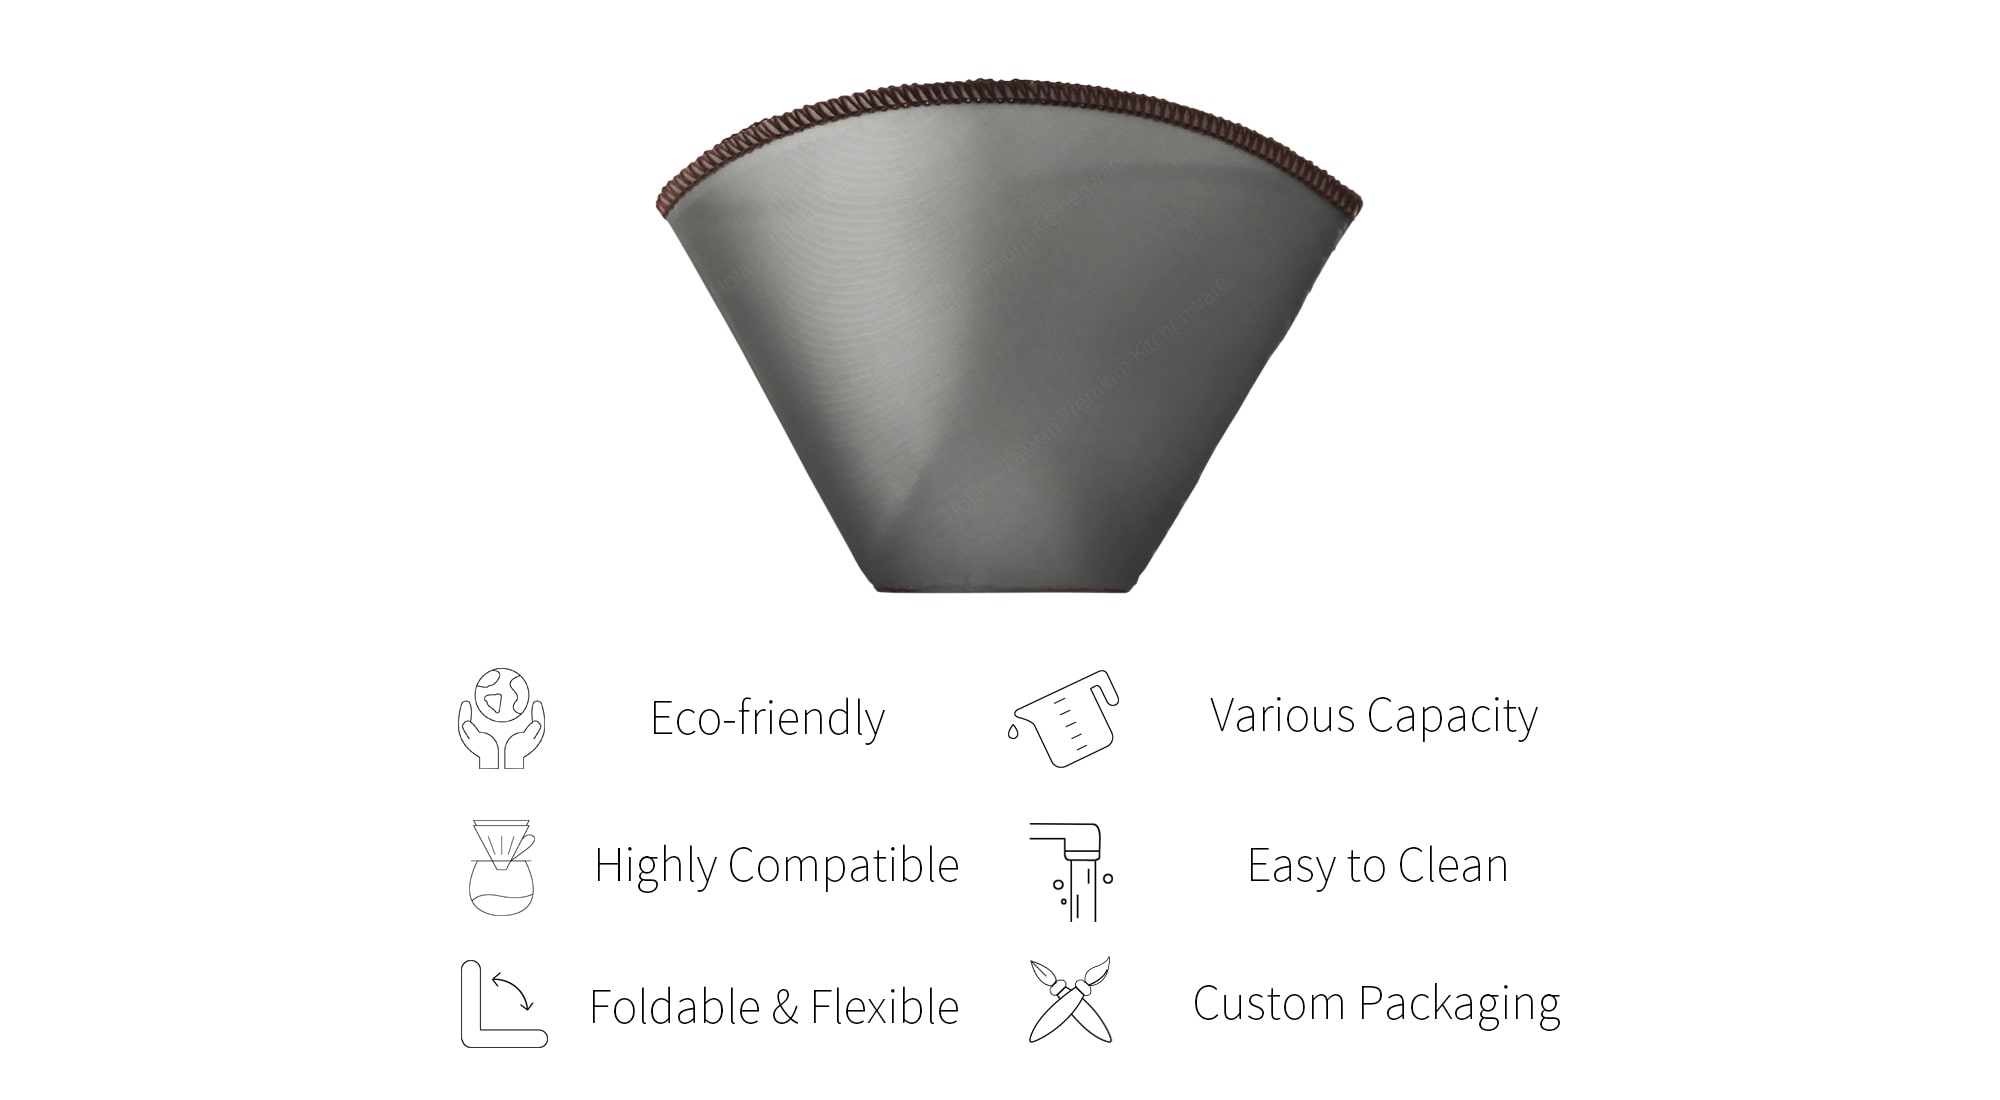 Features of Holar Eco-friendly coffee filter-PS-DC05